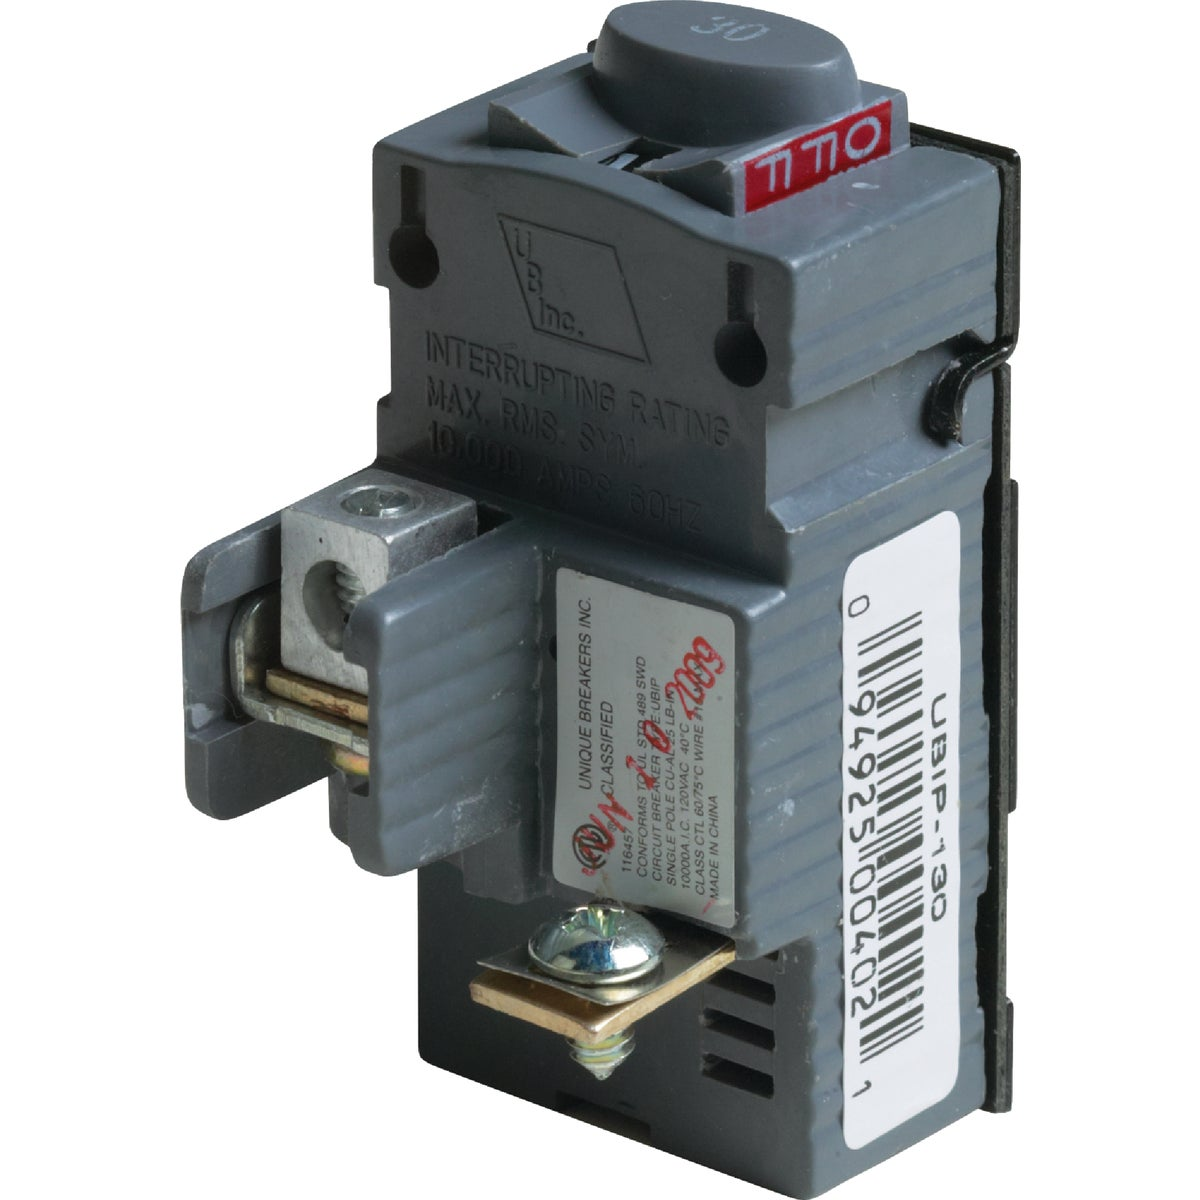 30A SP CIRCUIT BREAKER - UBIP130 by Connecticut Electric